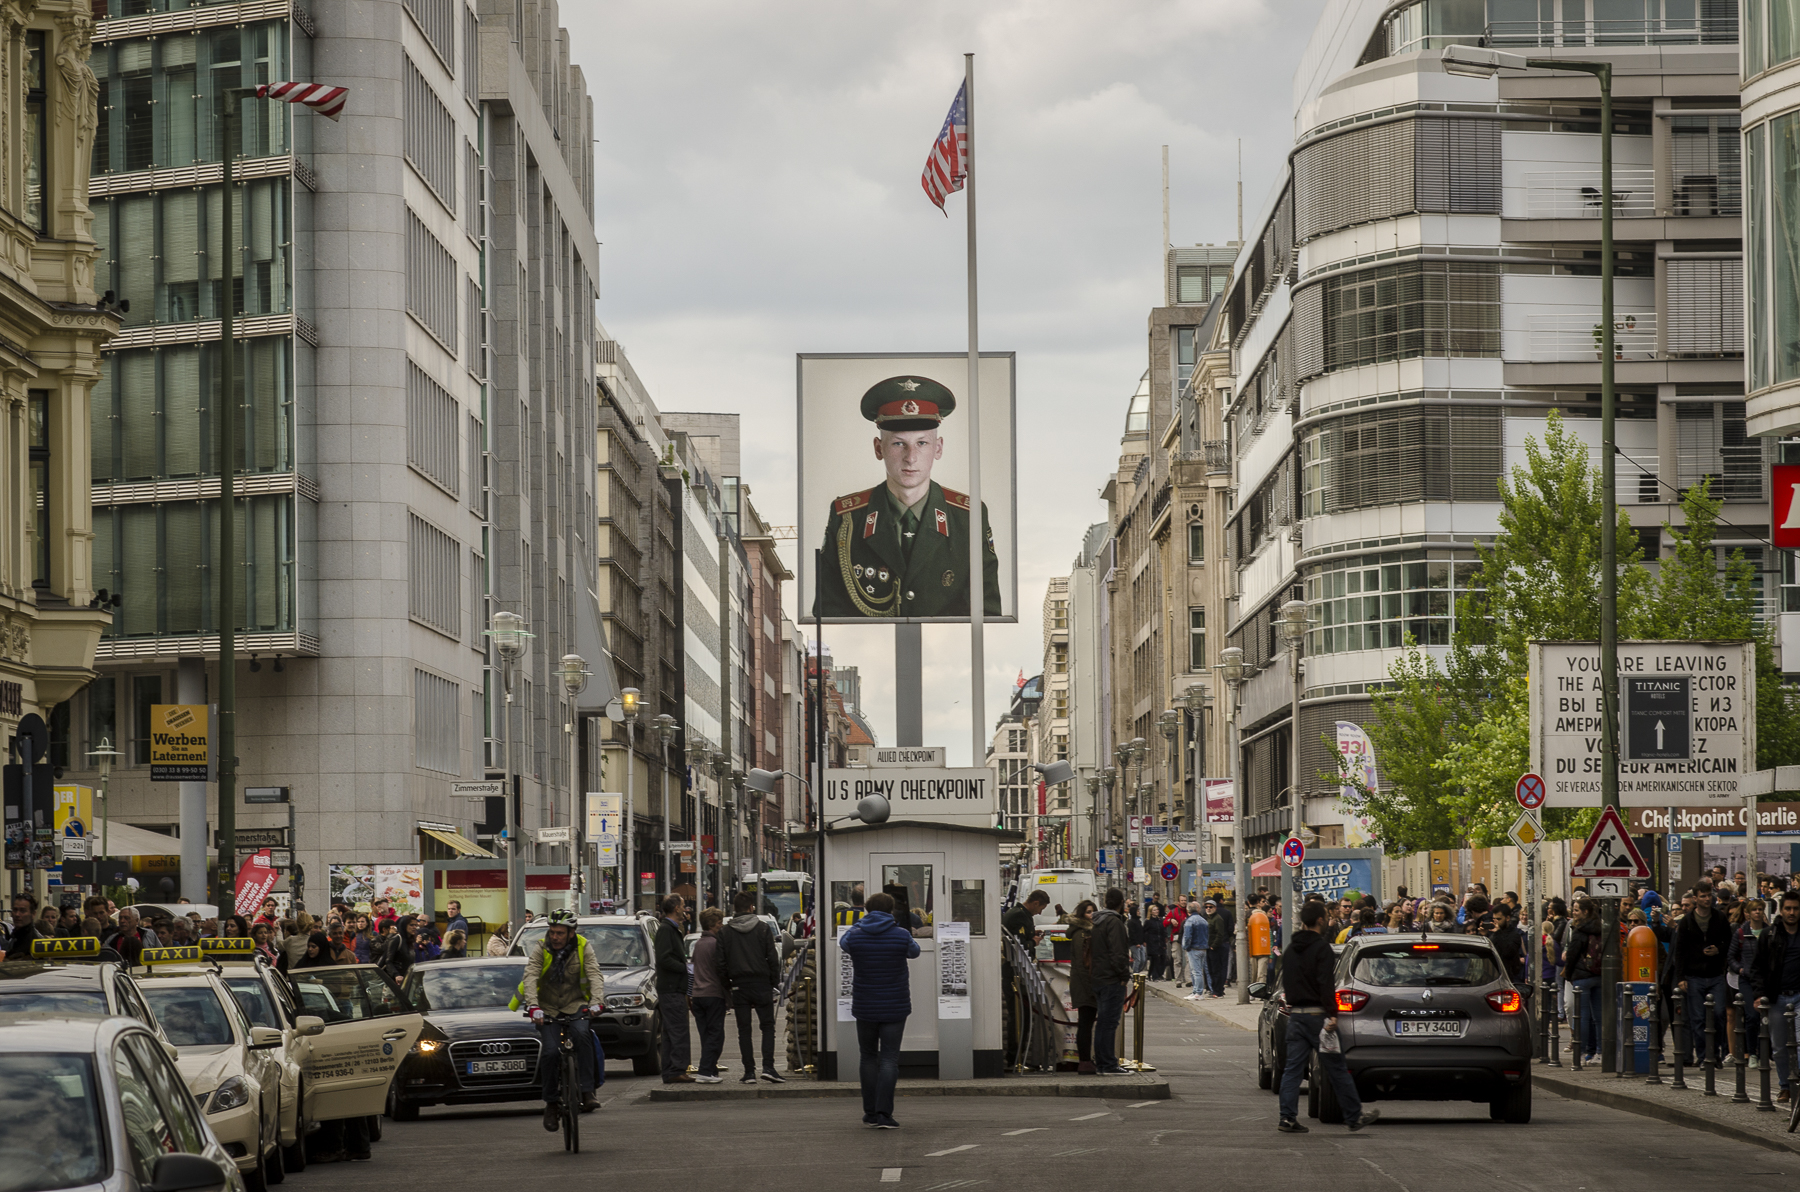 Russian SOLDIER, Checkpoint Charlie Photography : Alexander J.E. Bradley - Nikon D7000 - 80-200mm f/2.8 @ 120mm - f/11 - 1/125 - ISO 200